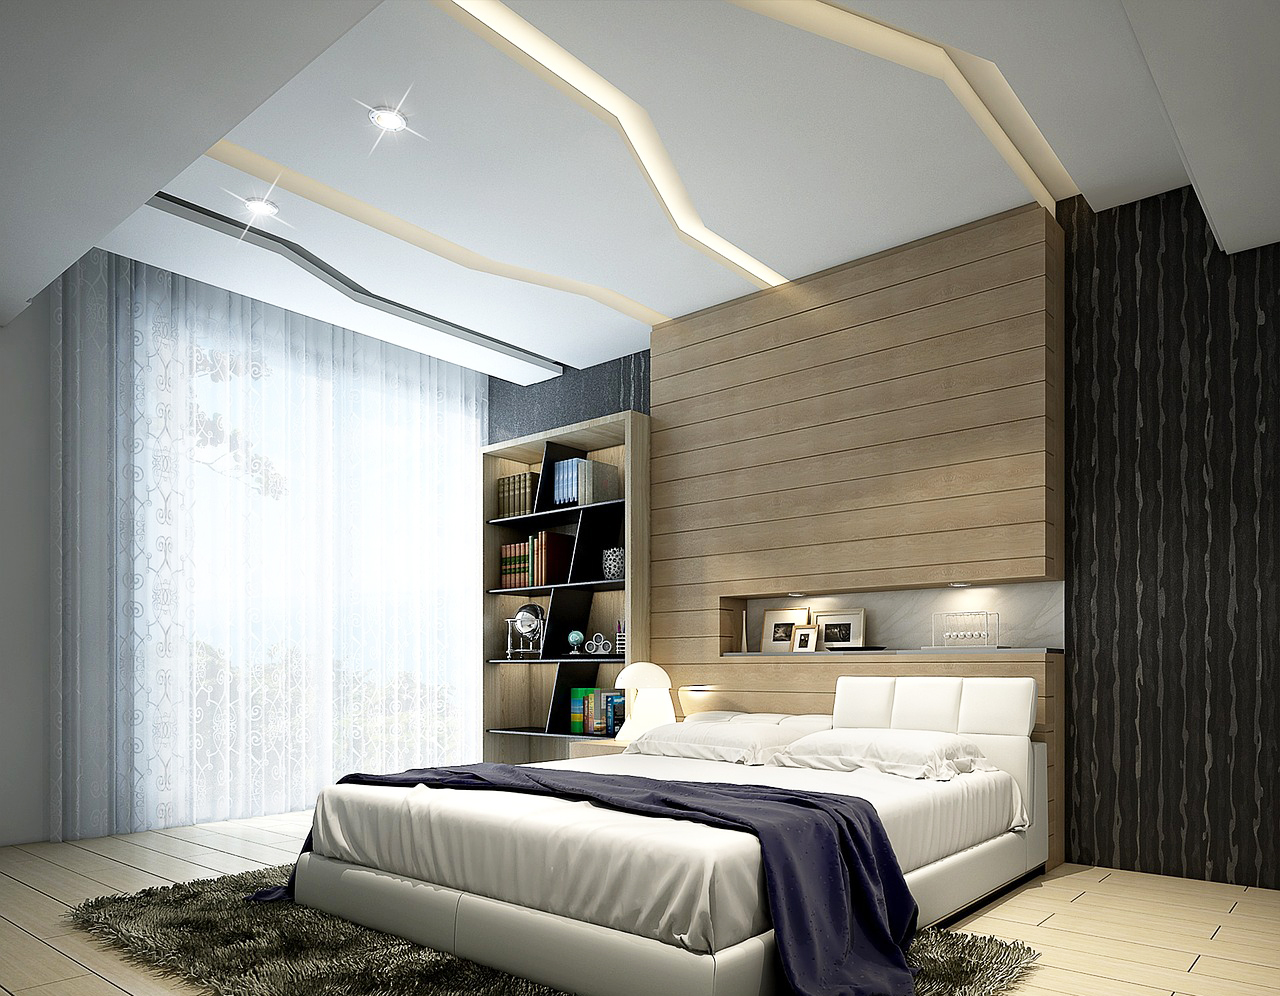 Bedroom Ceiling Design Creative Choices And Features With Ideas For Simple